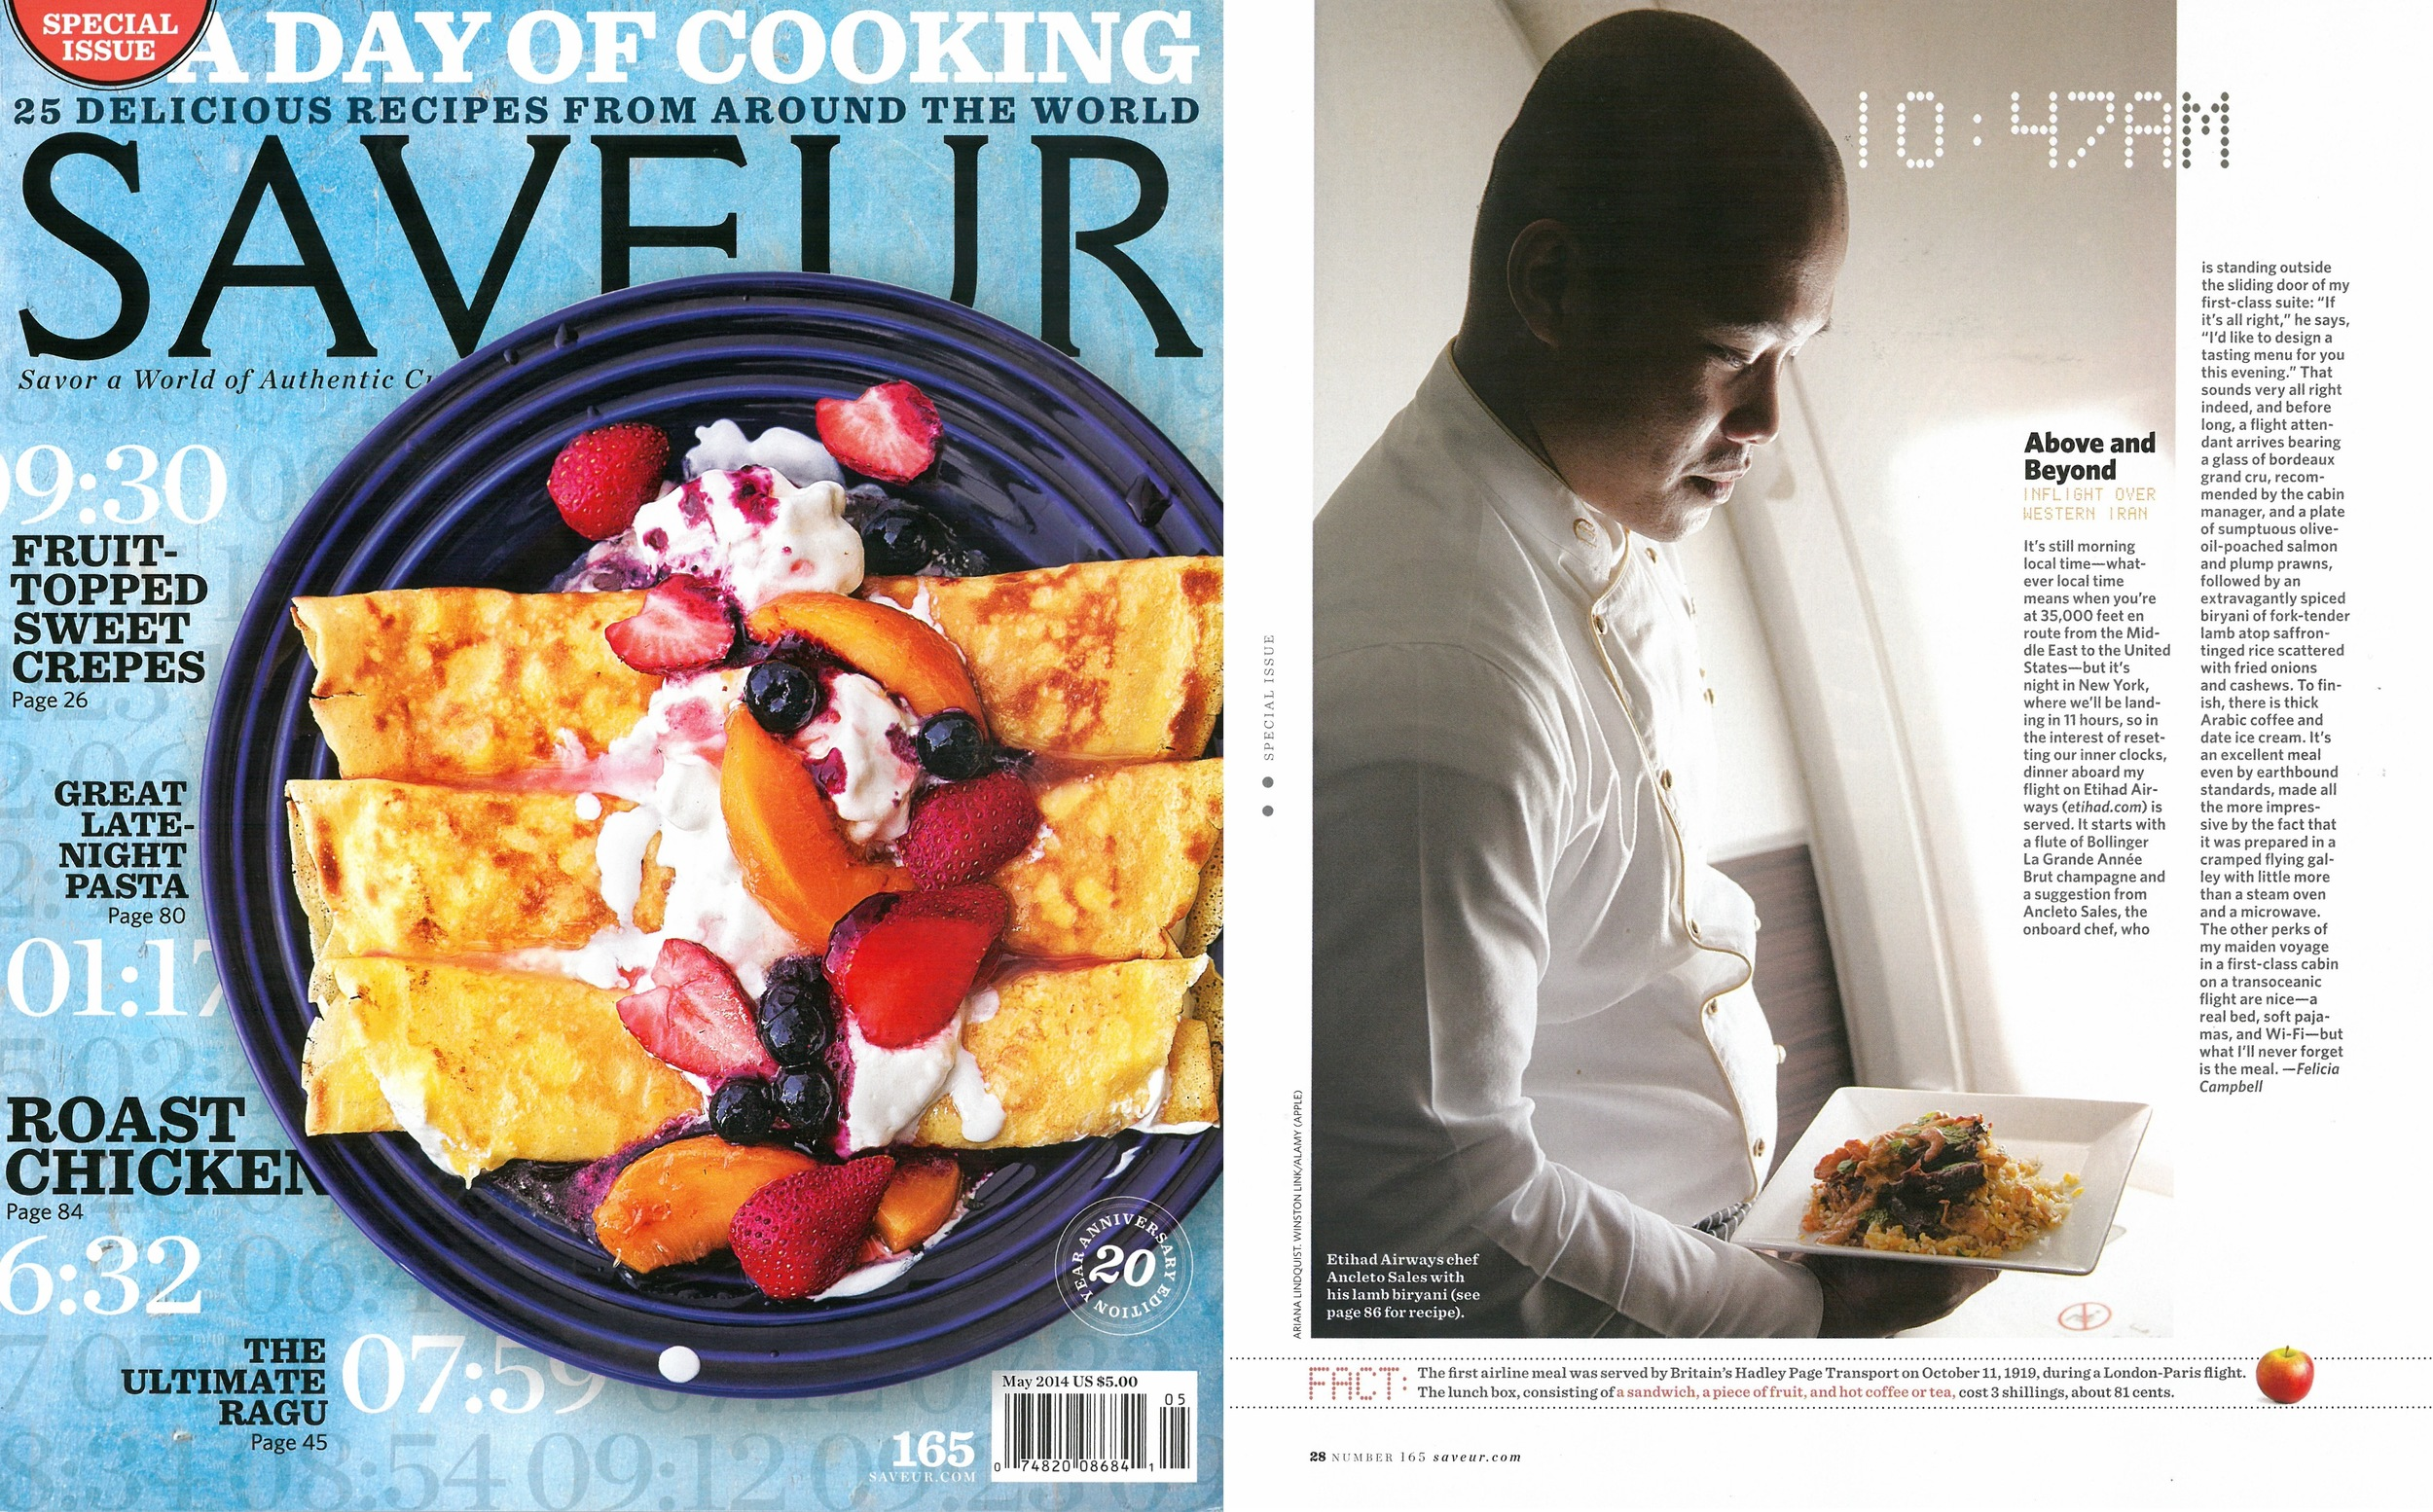 Etihad Airways' chefs in Saveur